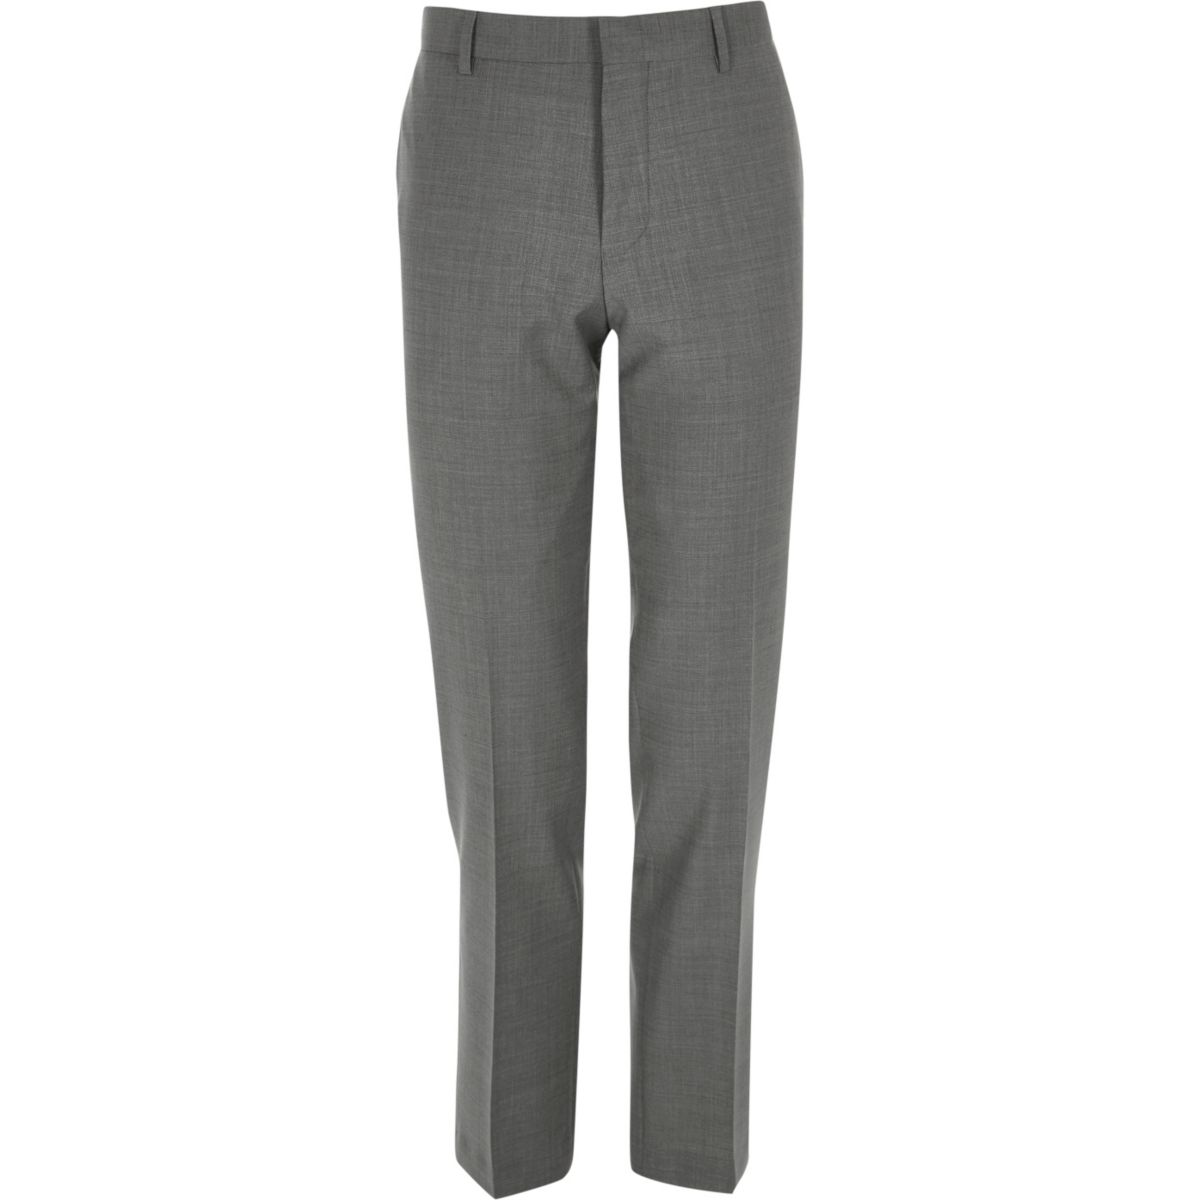 Grey slim Travel Suit trousers